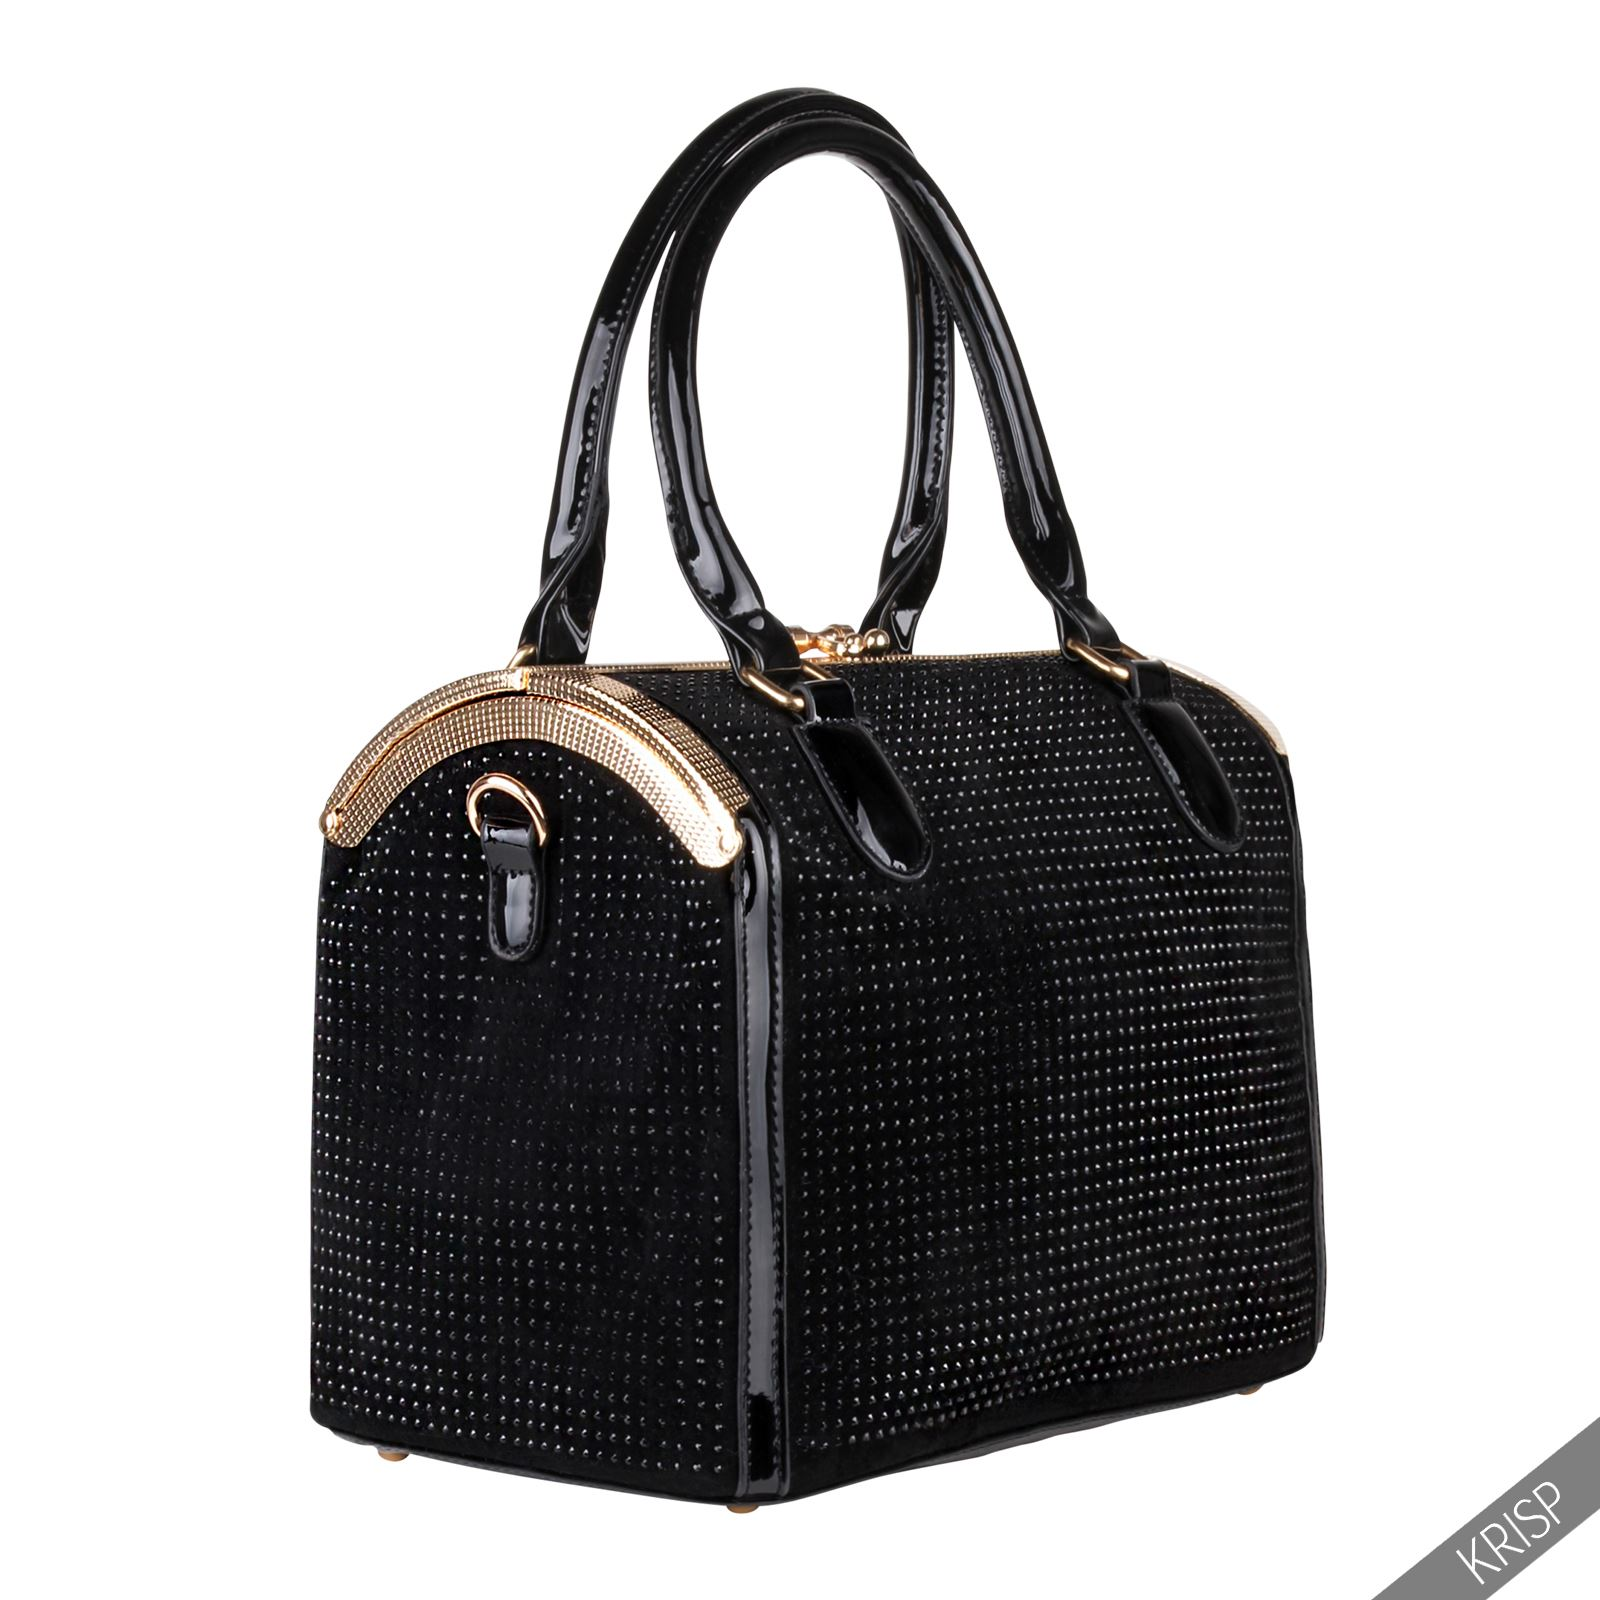 Shop Women's Tote Handbags at eBags - experts in bags and accessories since We offer easy returns, expert advice, and millions of customer reviews.